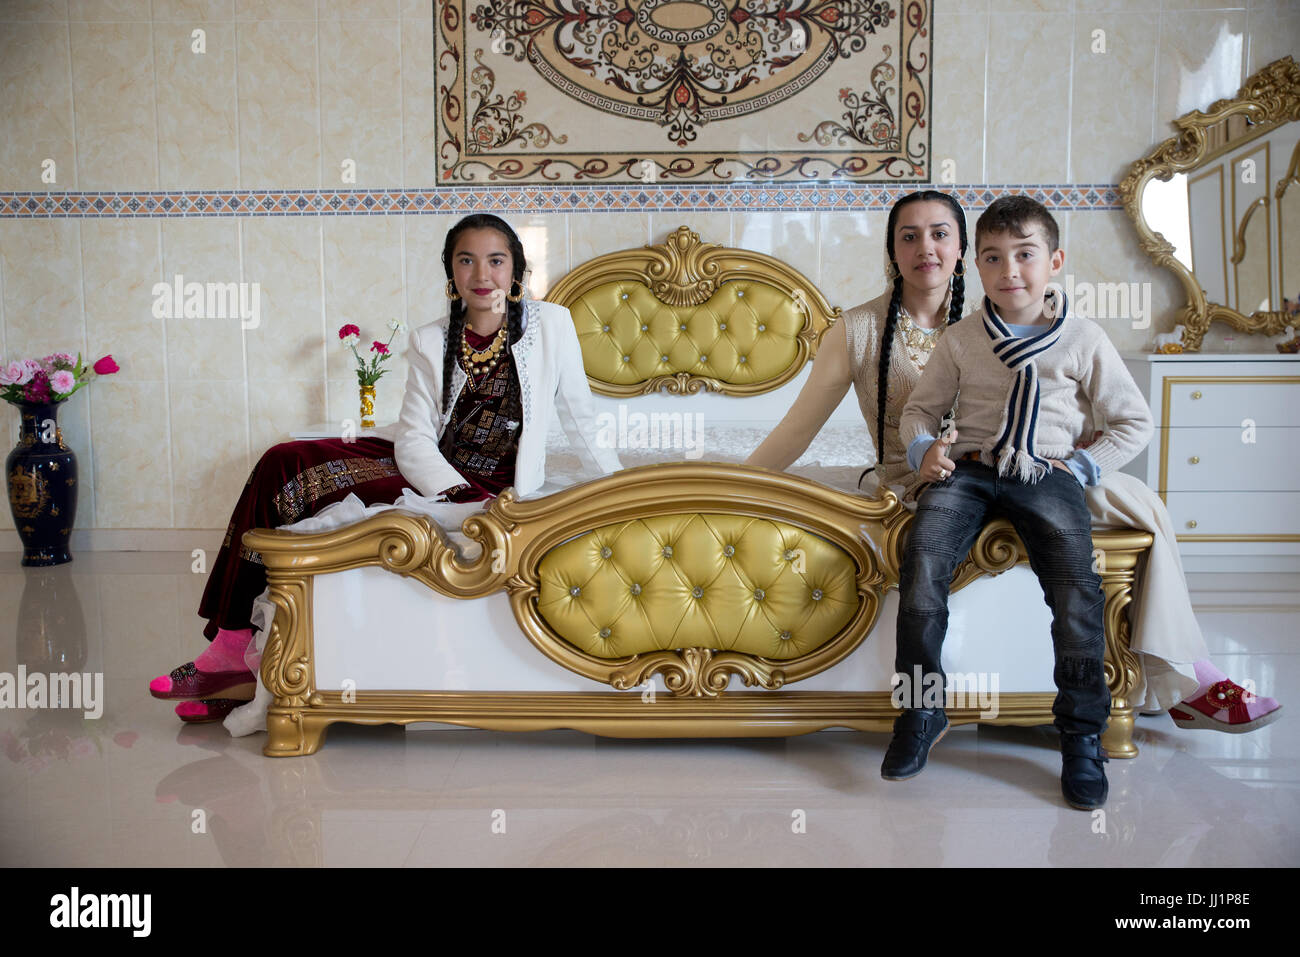 Kids of a wealthy Roma gypsy family posing in the luxurious bedroom of their house, Ivanesti, Romania - Stock Image